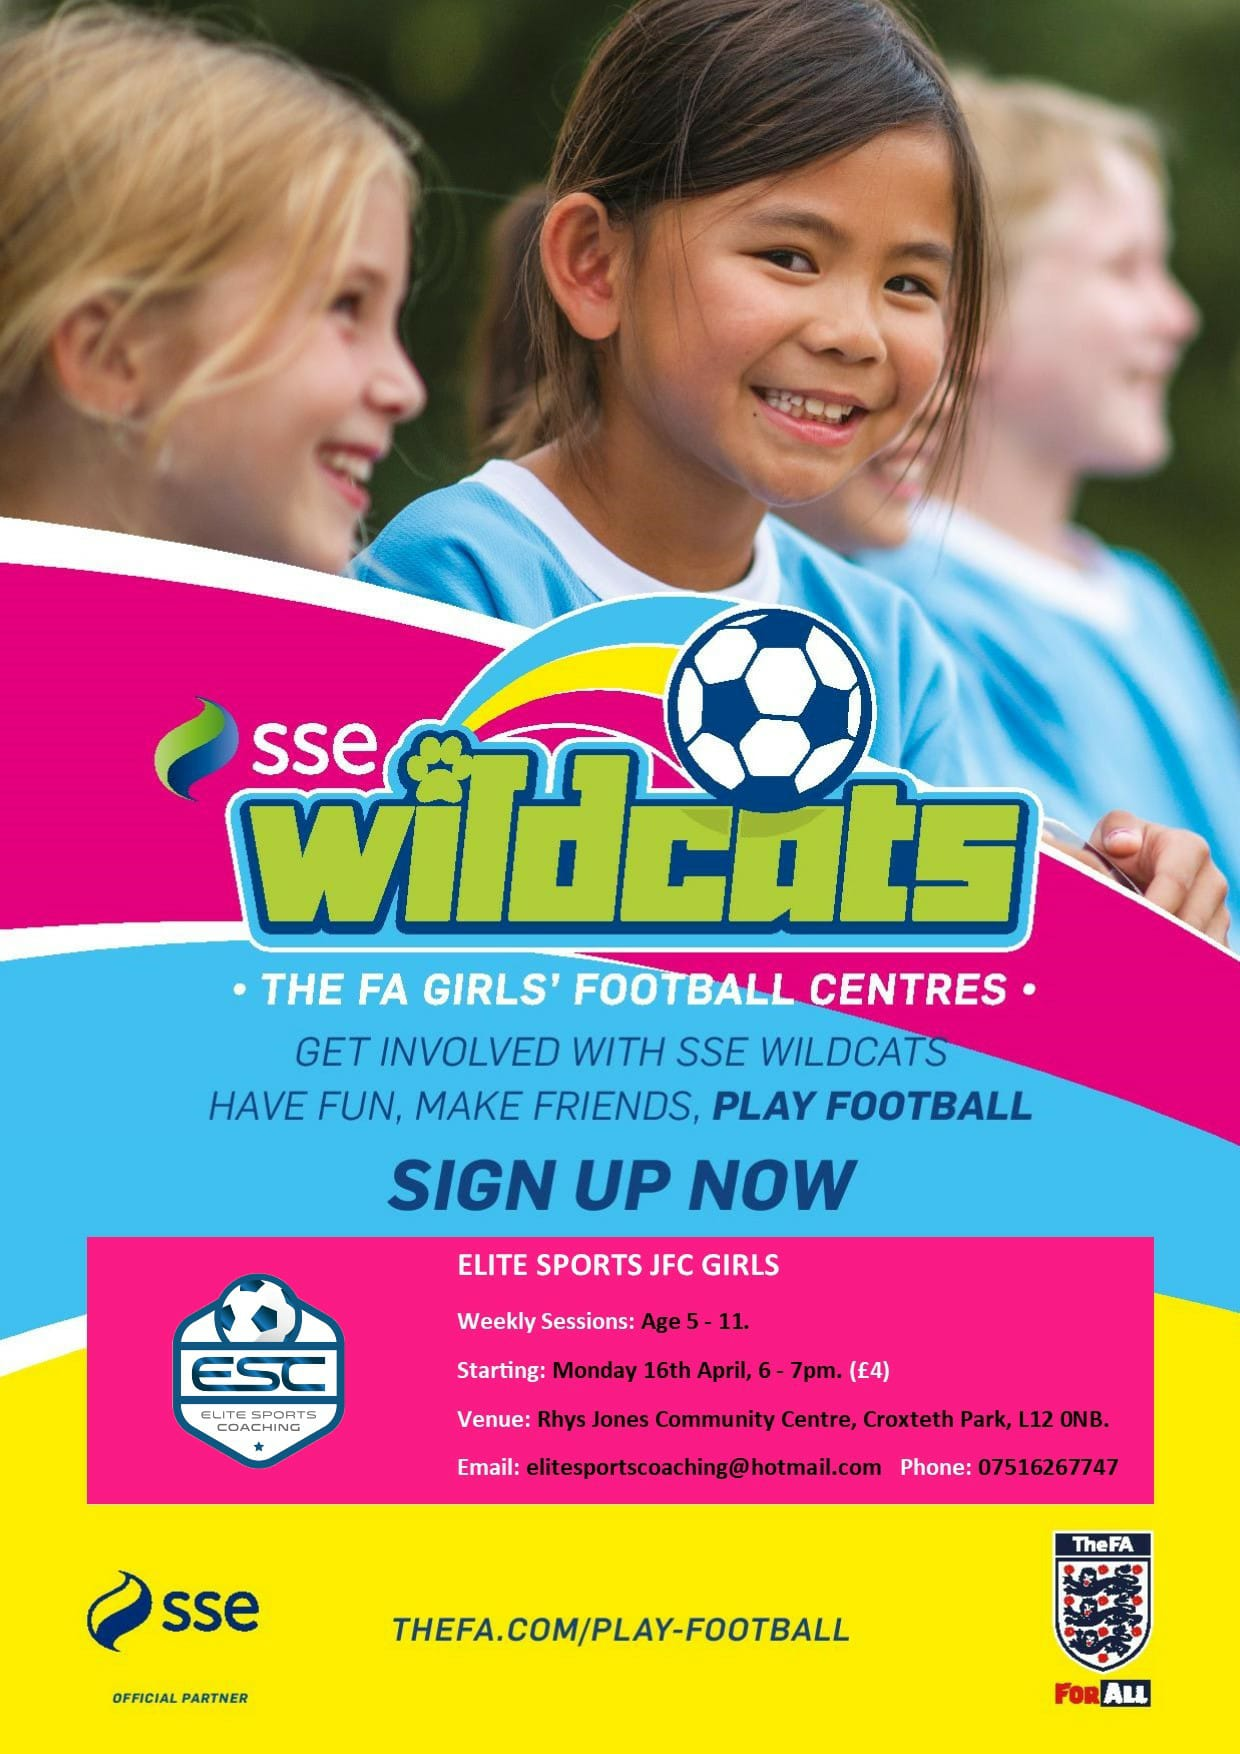 Wildcats girls football at the Rhys Jones Community Centre